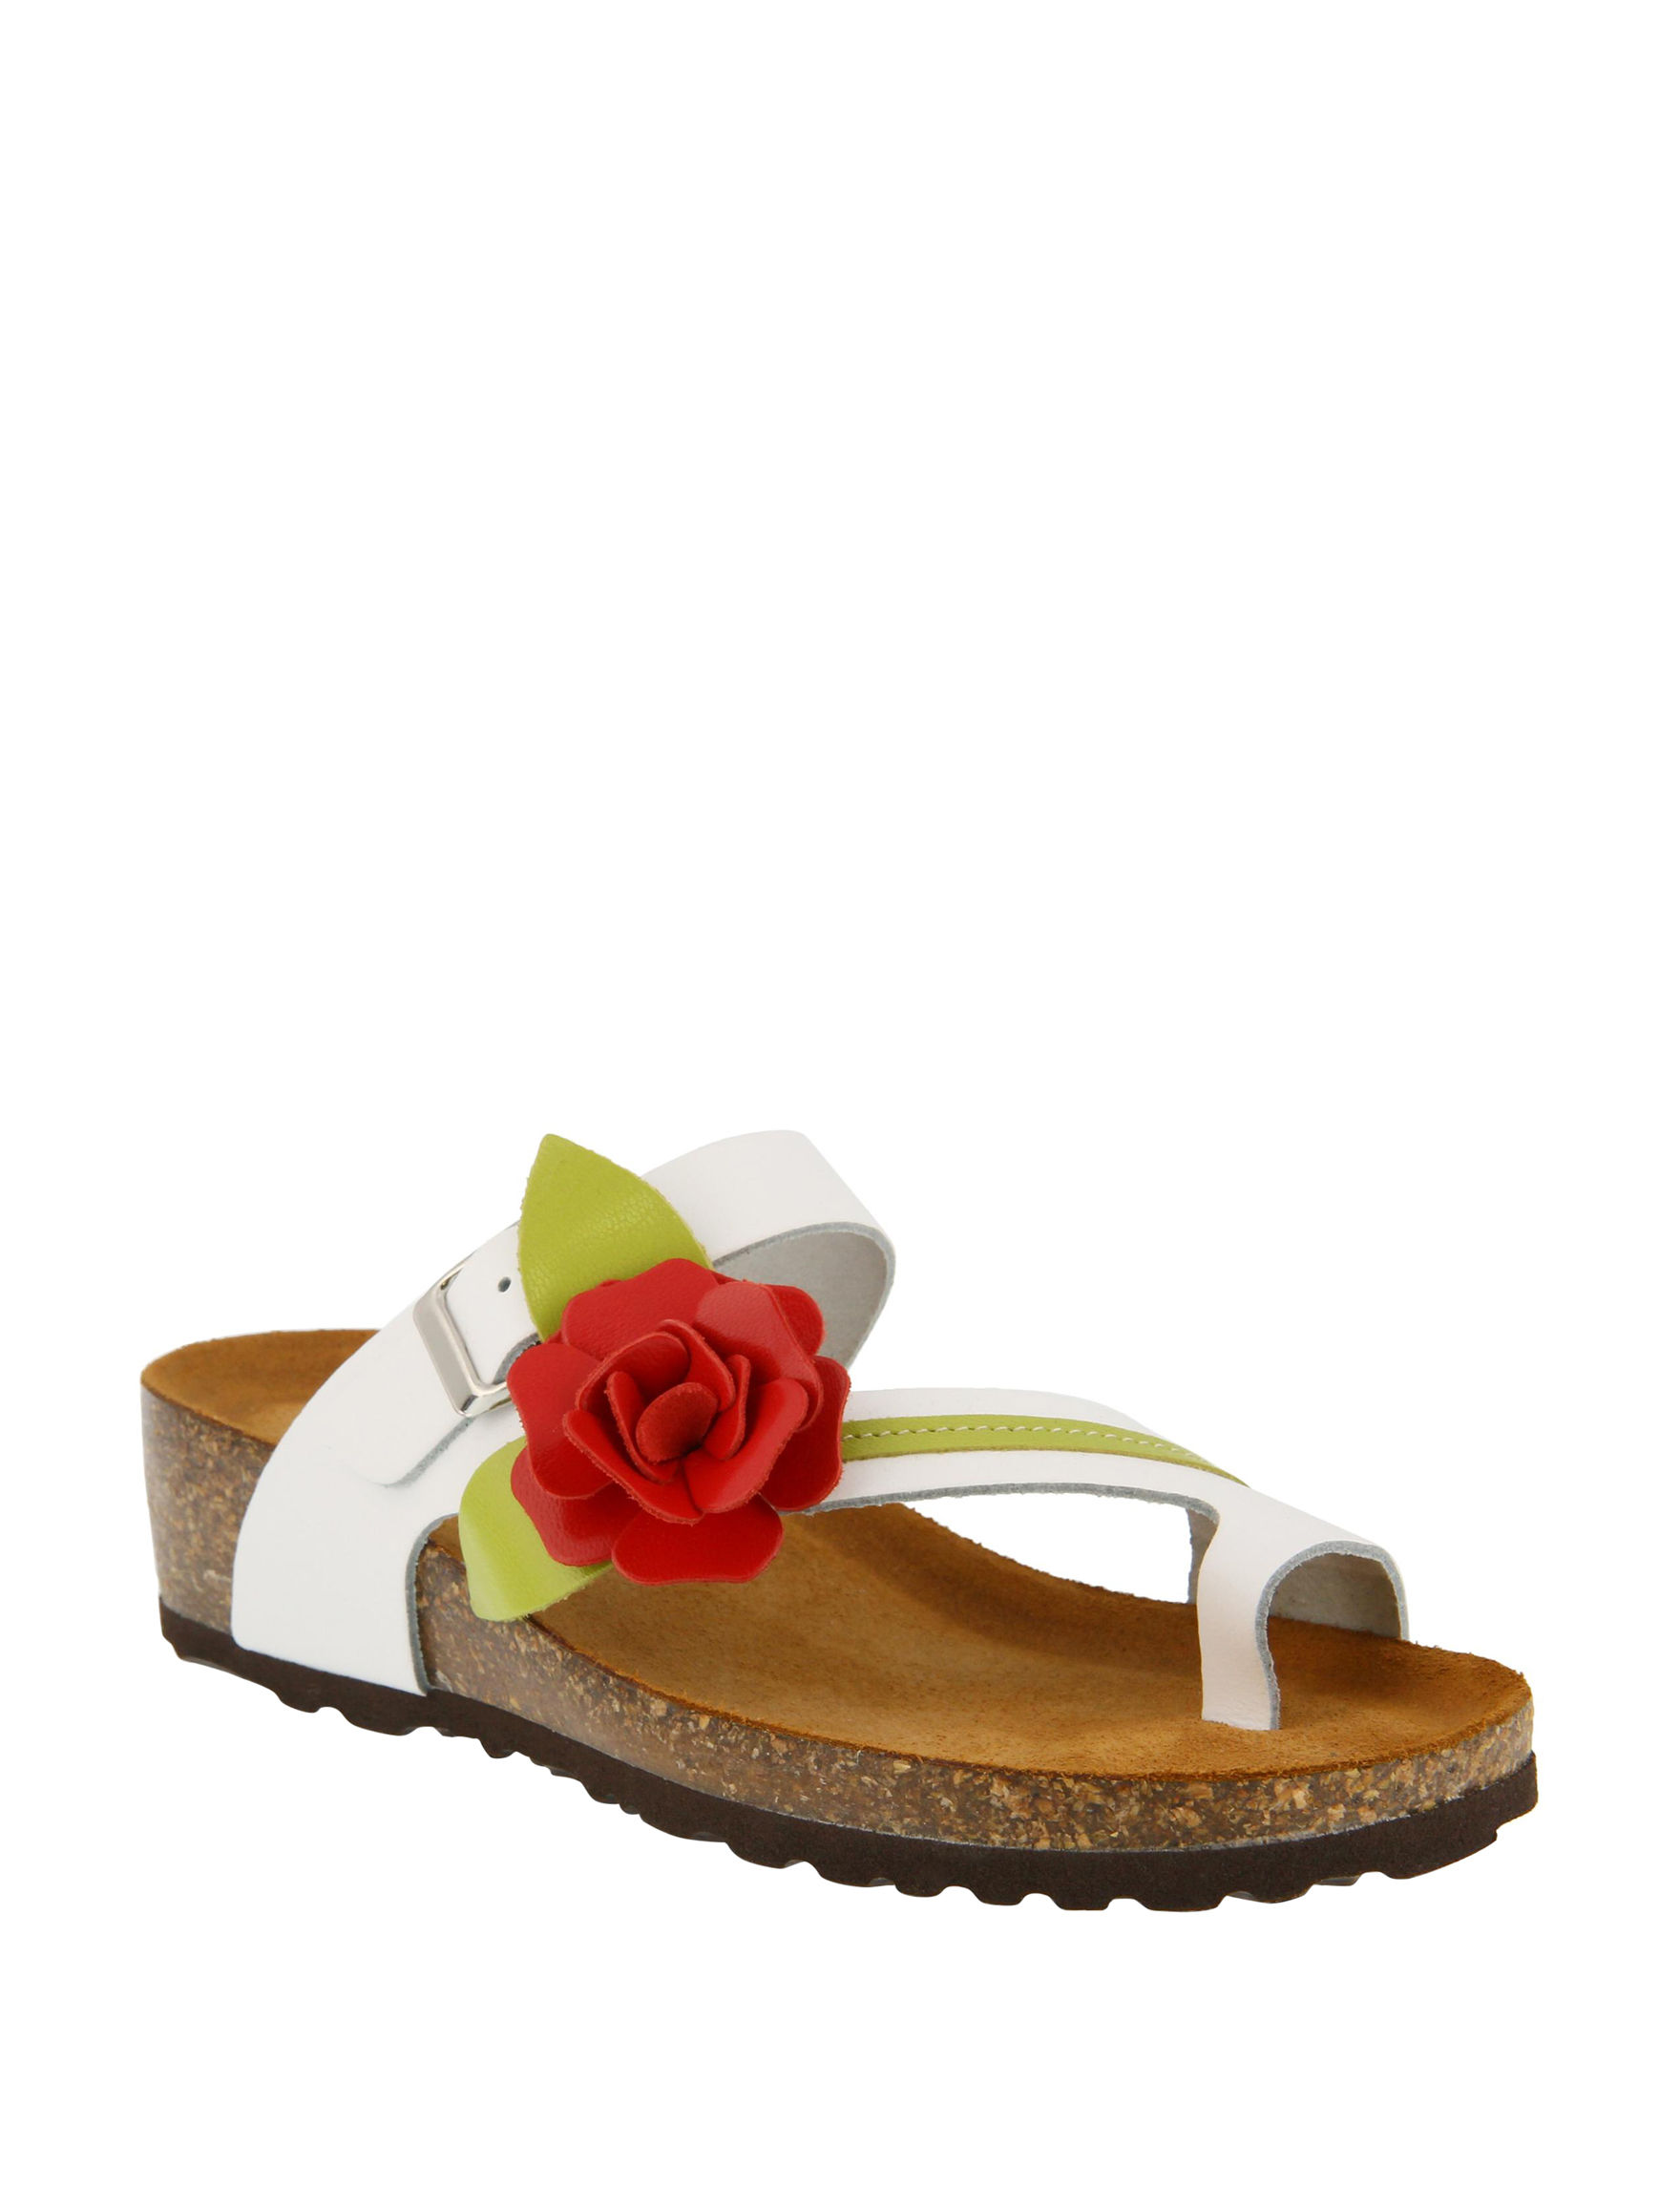 Spring Step White Flat Sandals